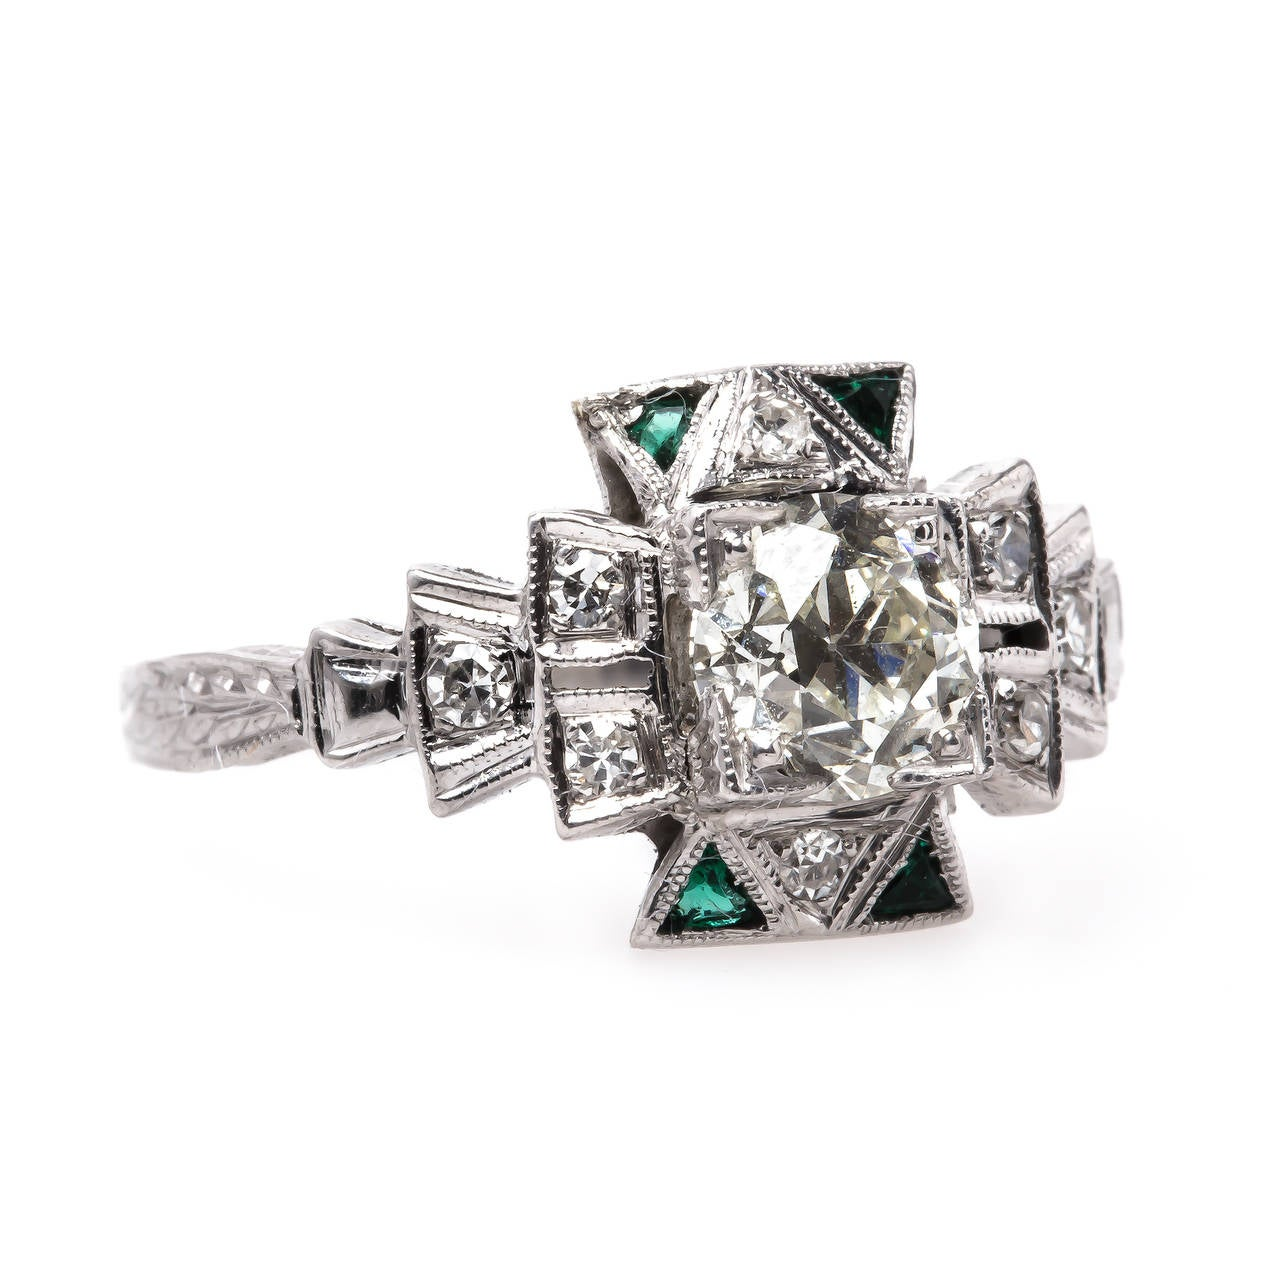 Late Art Deco 88 Carat Emerald Diamond Engagement Ring at 1stdibs